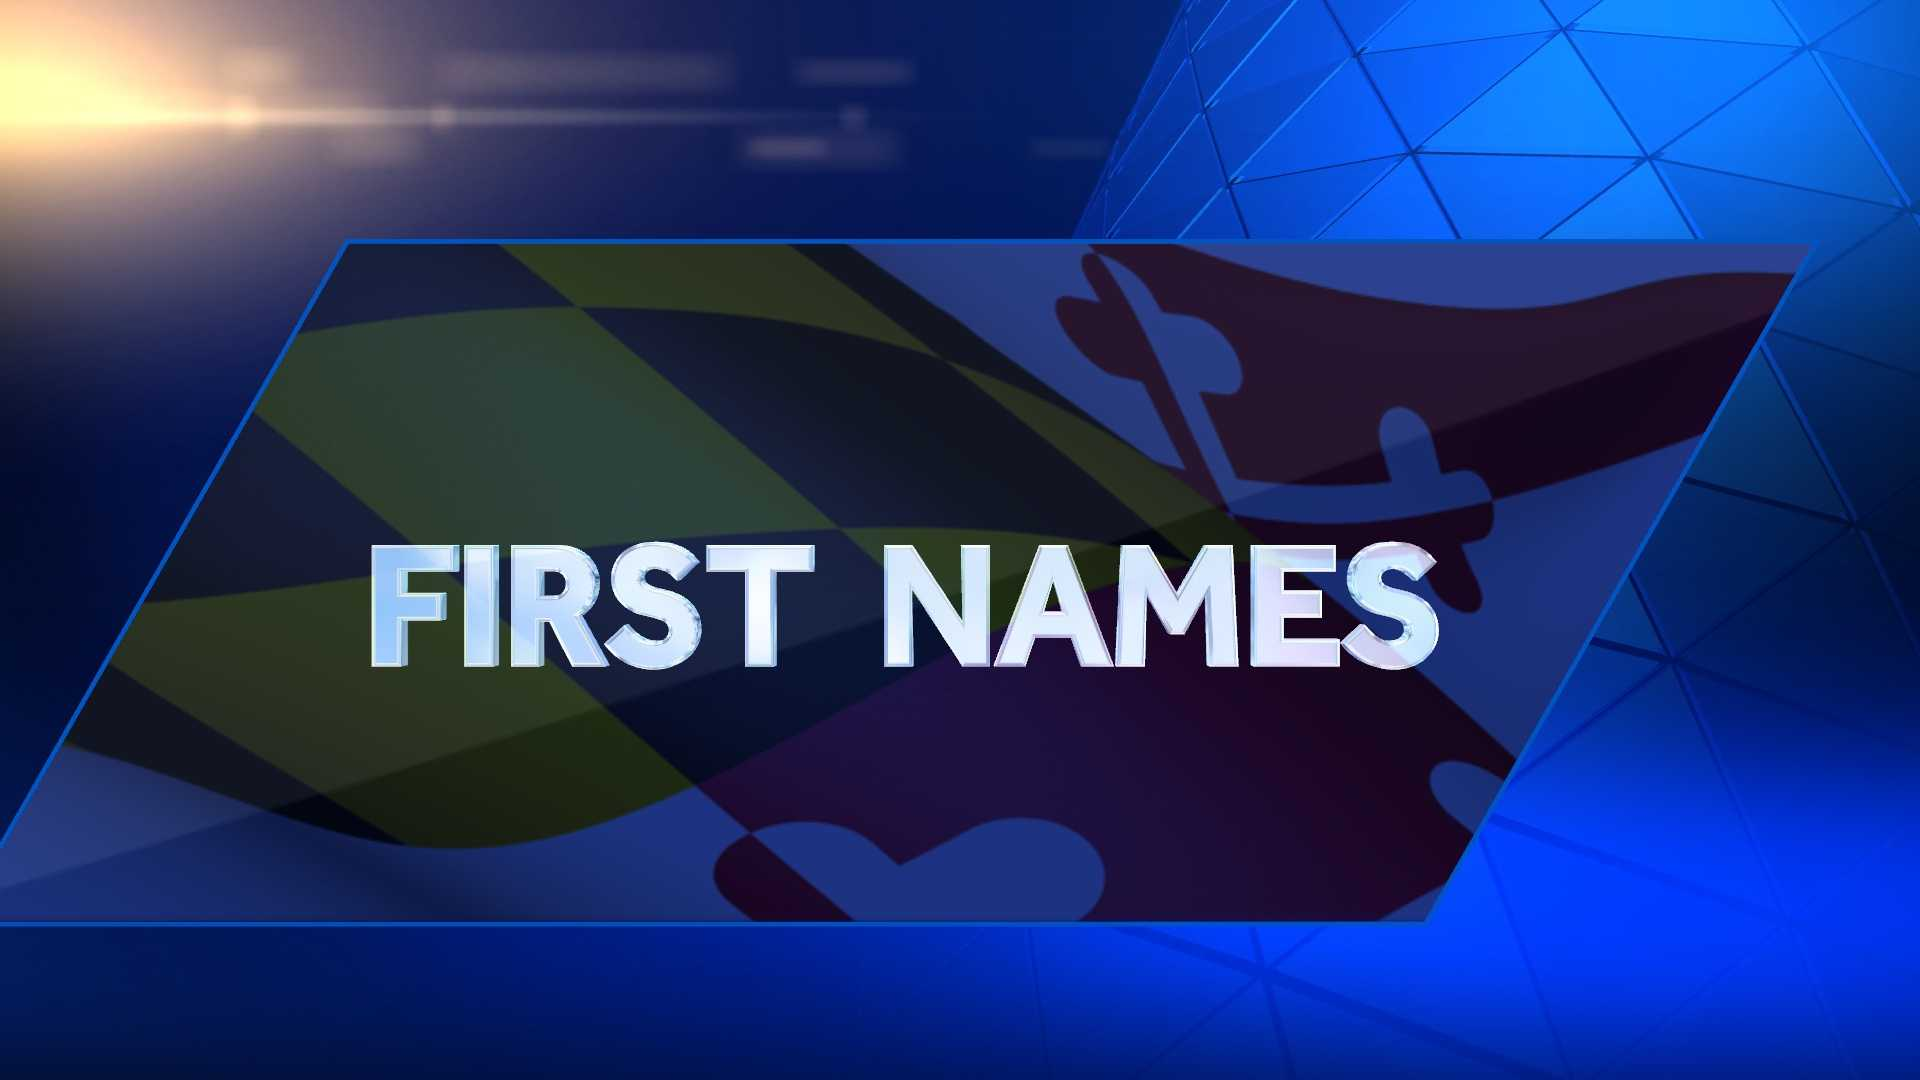 WhitePages has compiled the most popular first names in Maryland.